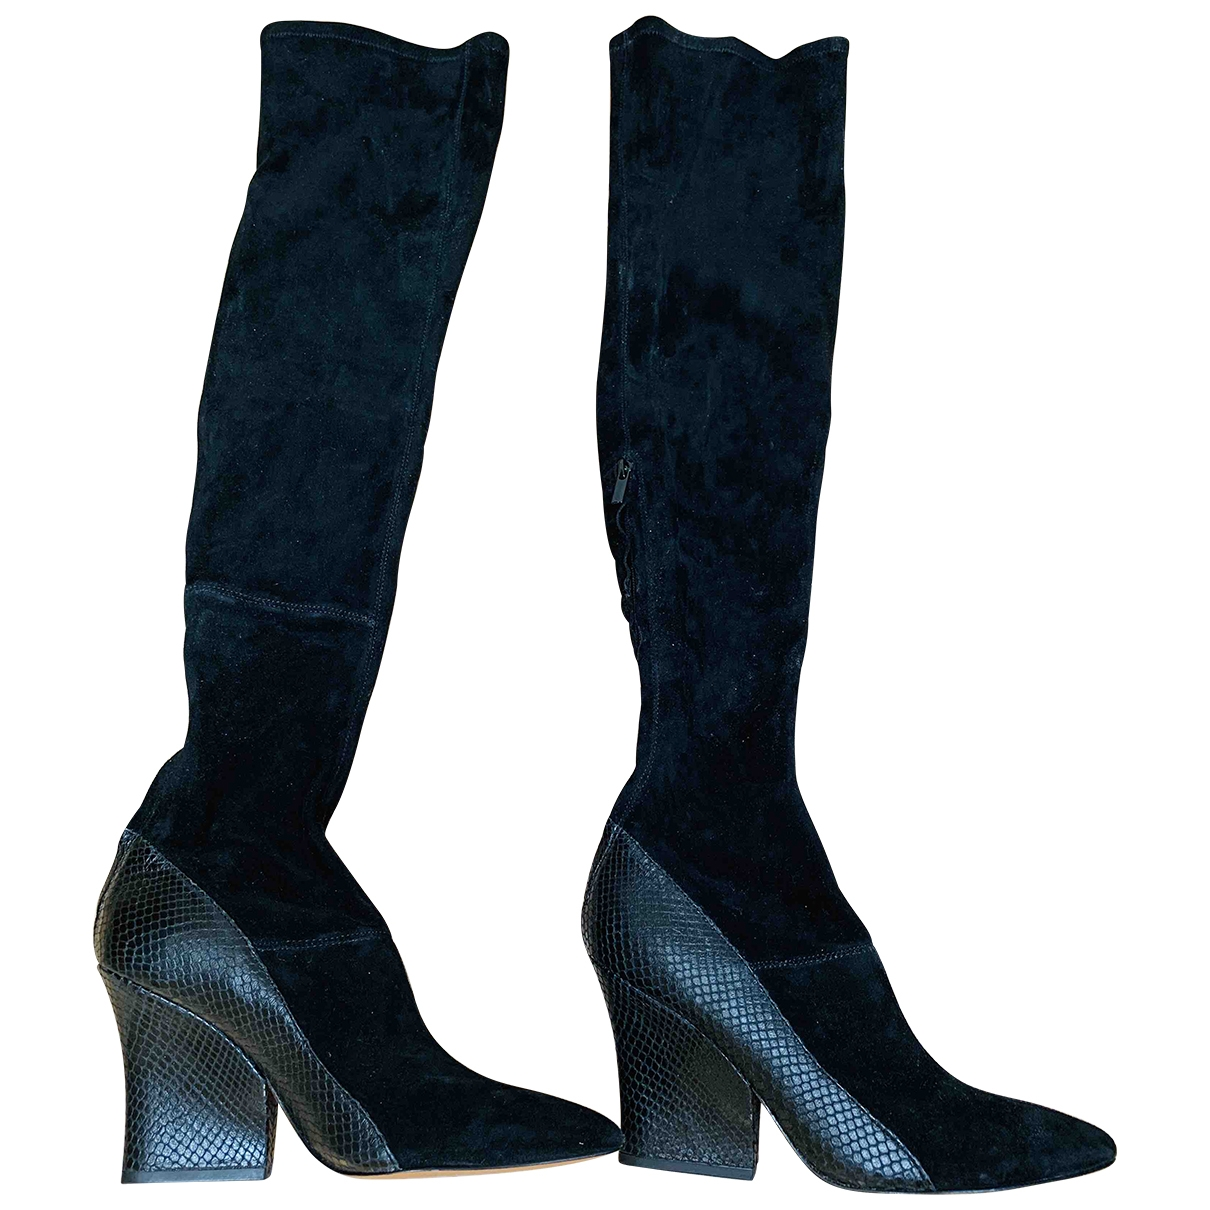 & Stories \N Black Suede Boots for Women 5 UK